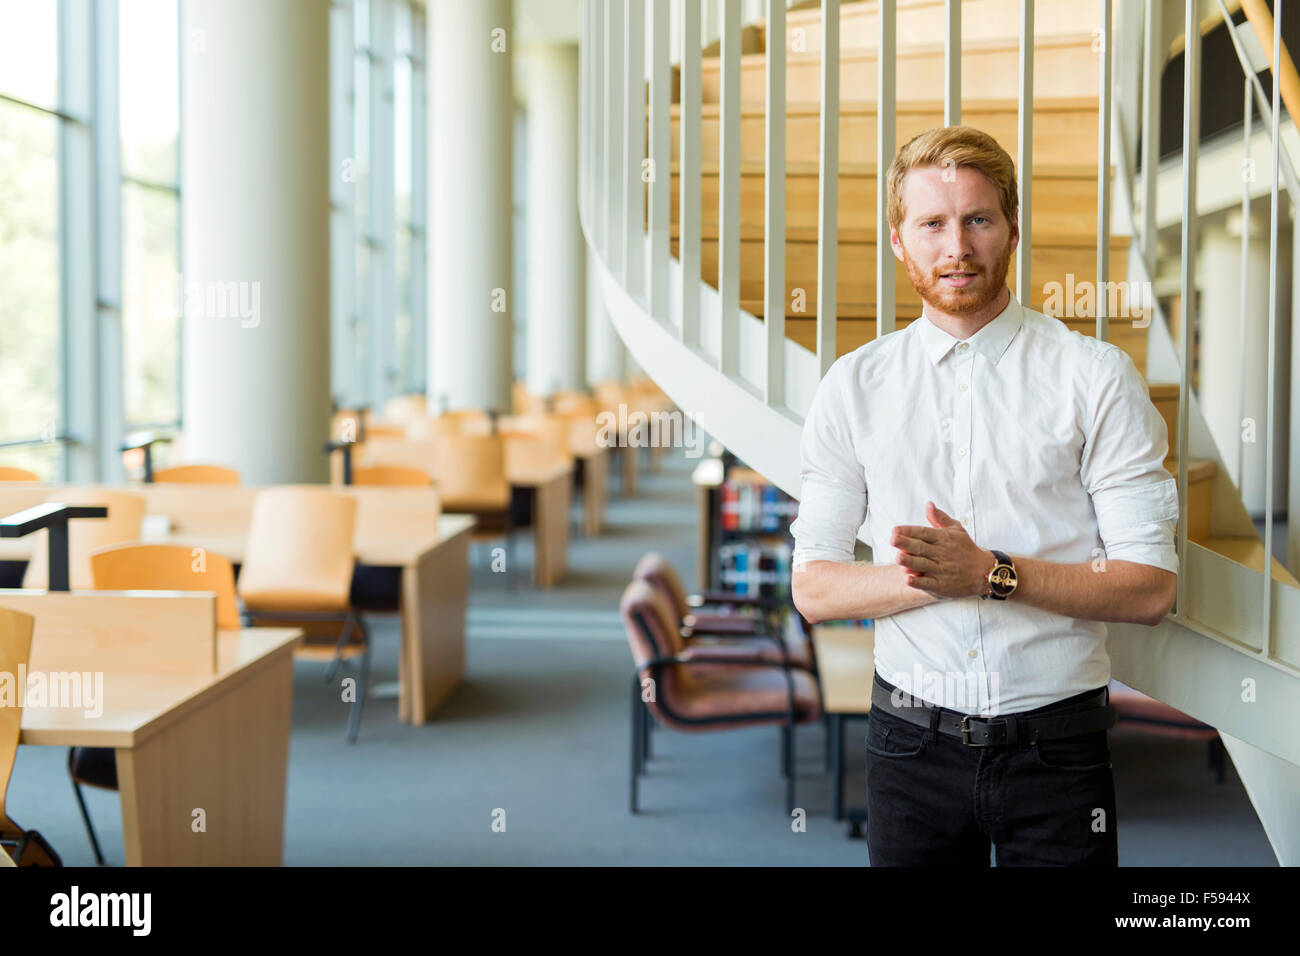 Smart student promoting library as a source of knowledge to the new generation - Stock Image